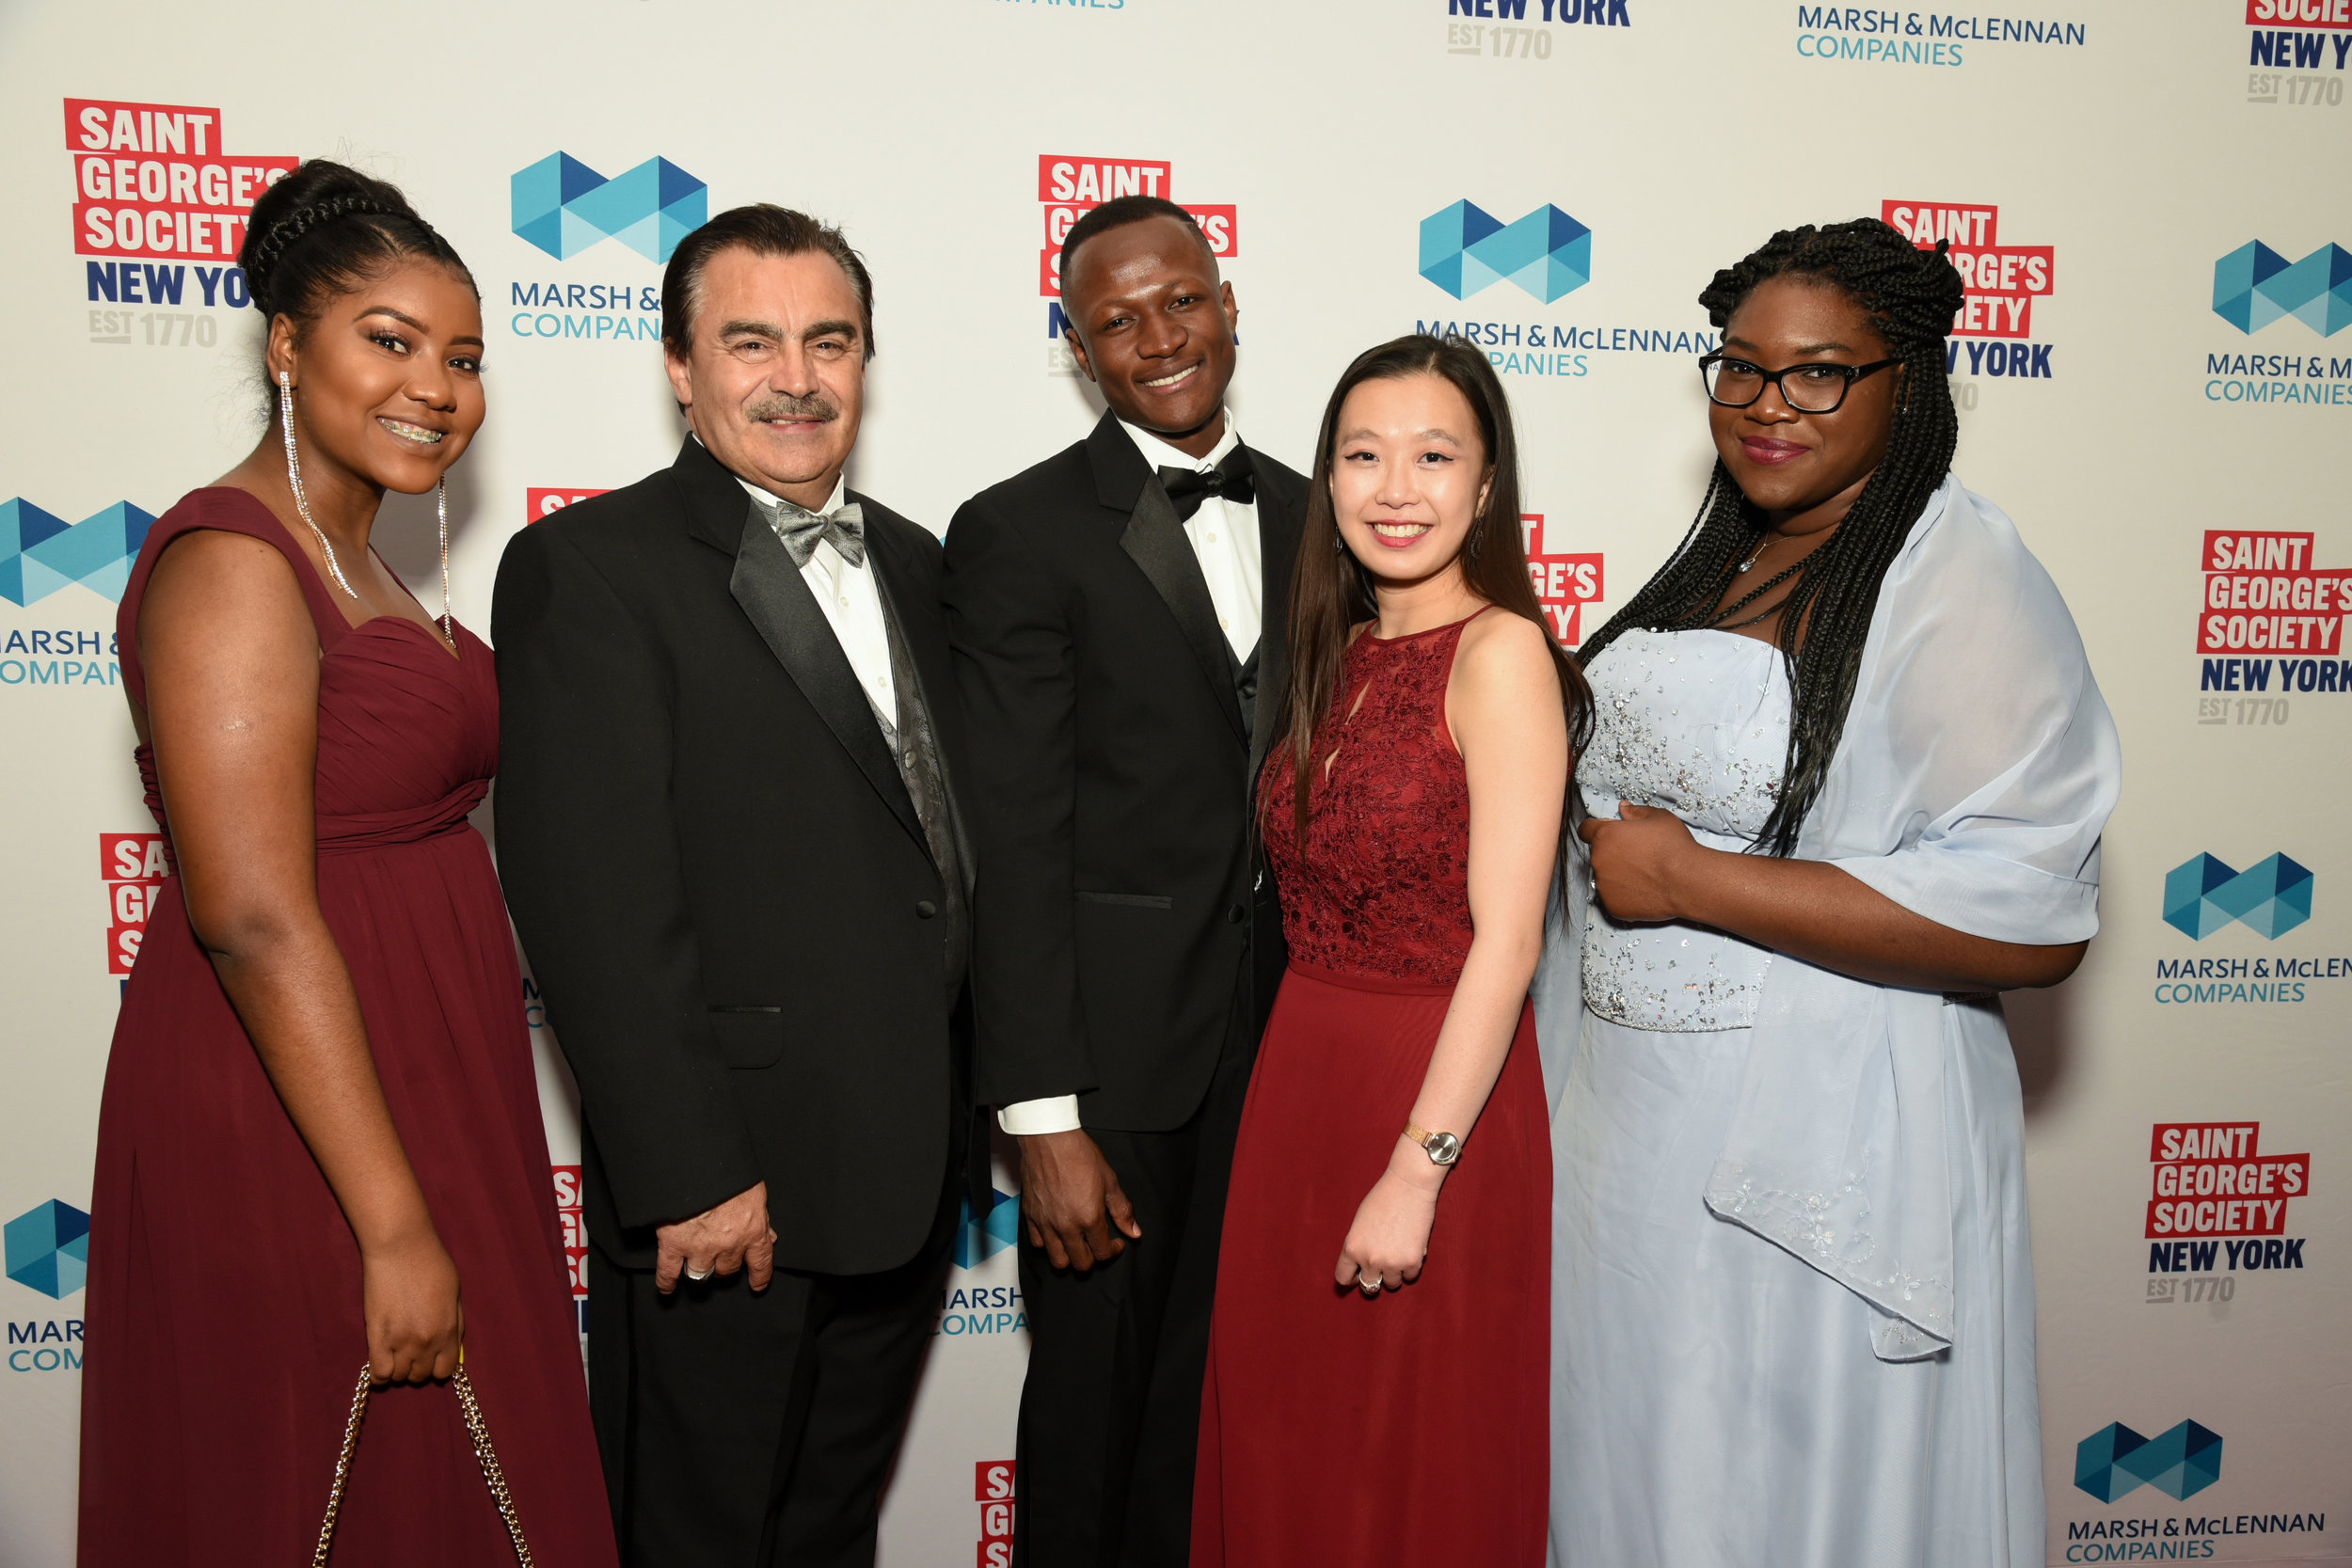 St. George's scholars with José Magdaleno, Vice President of Student Affairs at Lehman College